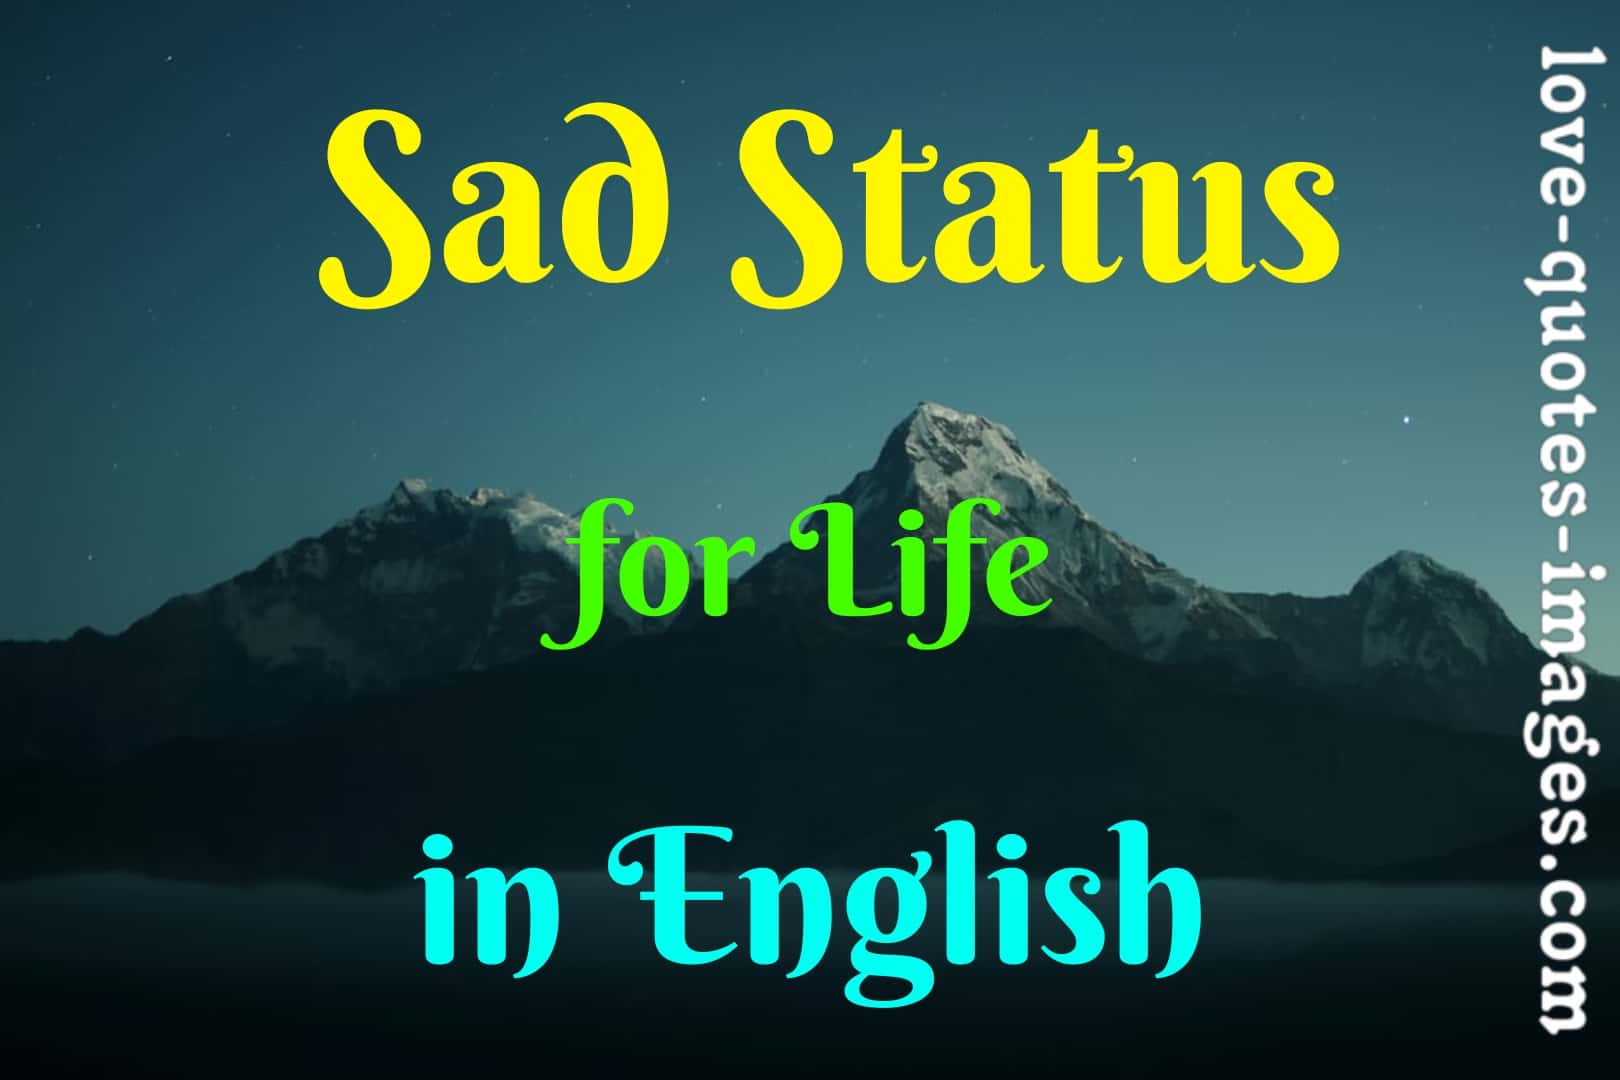 sad status in english for life